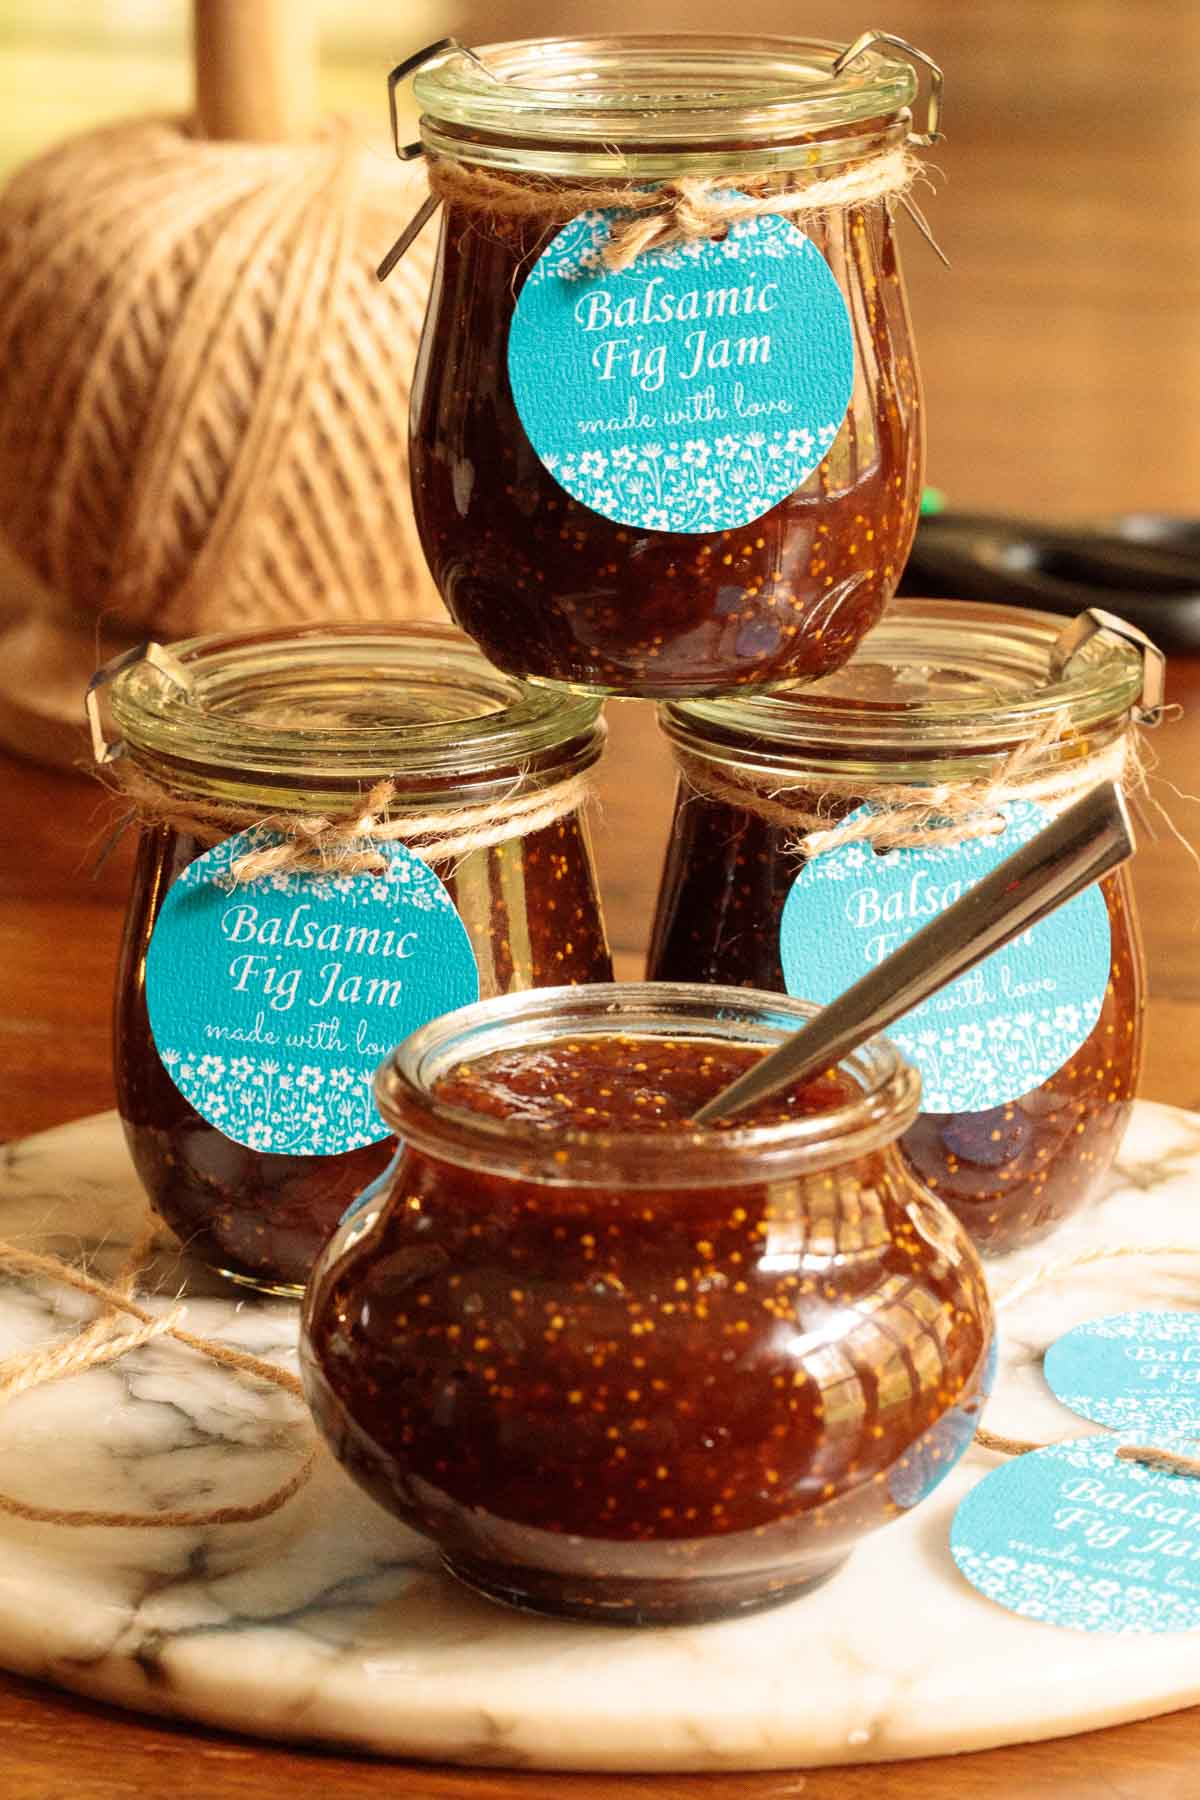 Photo of jars of Easy Balsamic Fig Jam with customized labels attached resting on a marble appetizer tray.